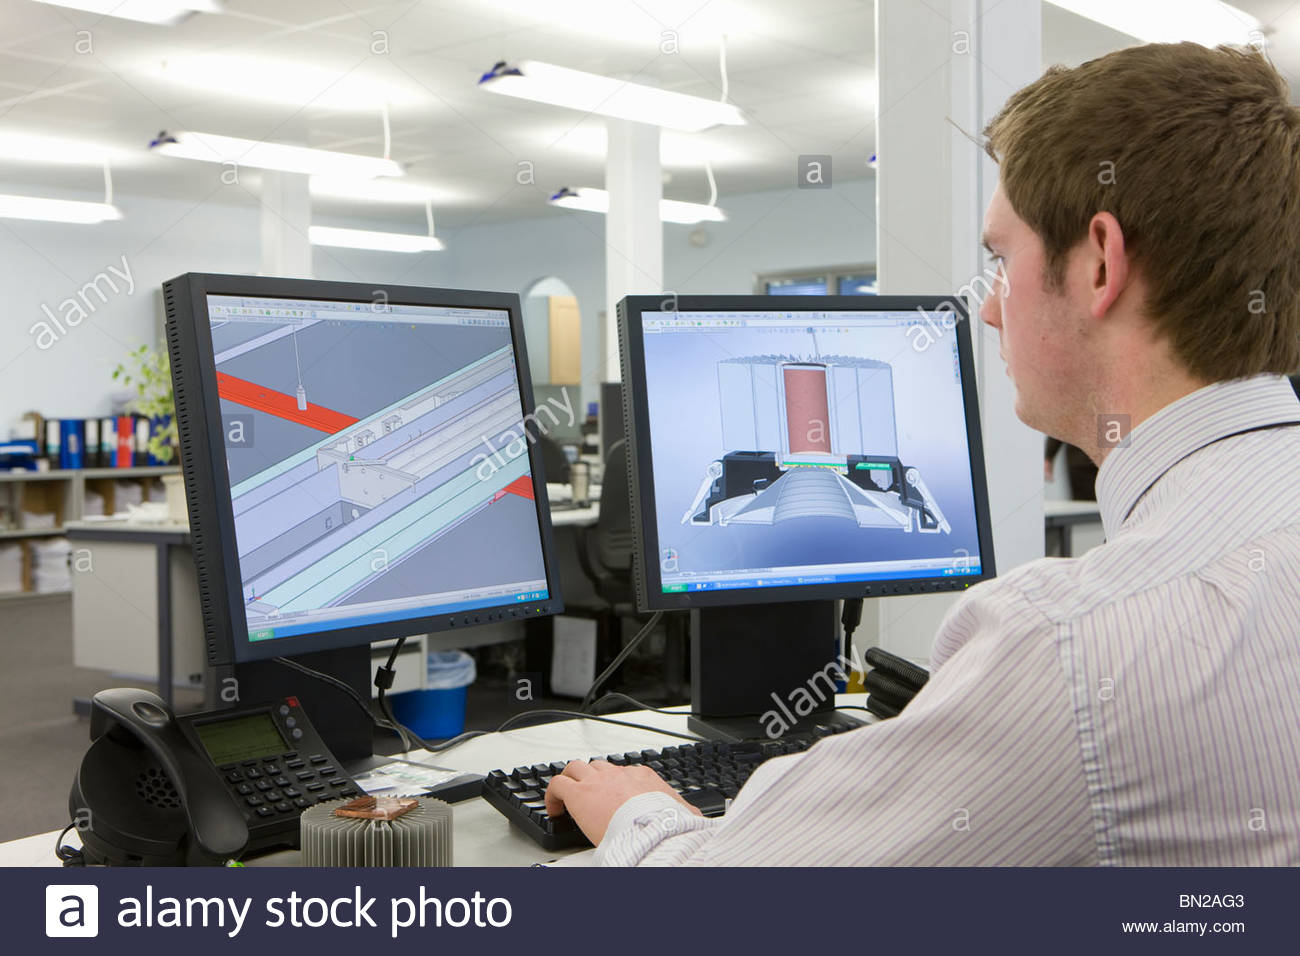 CAD designer working at computer monitors in office - Stock Image